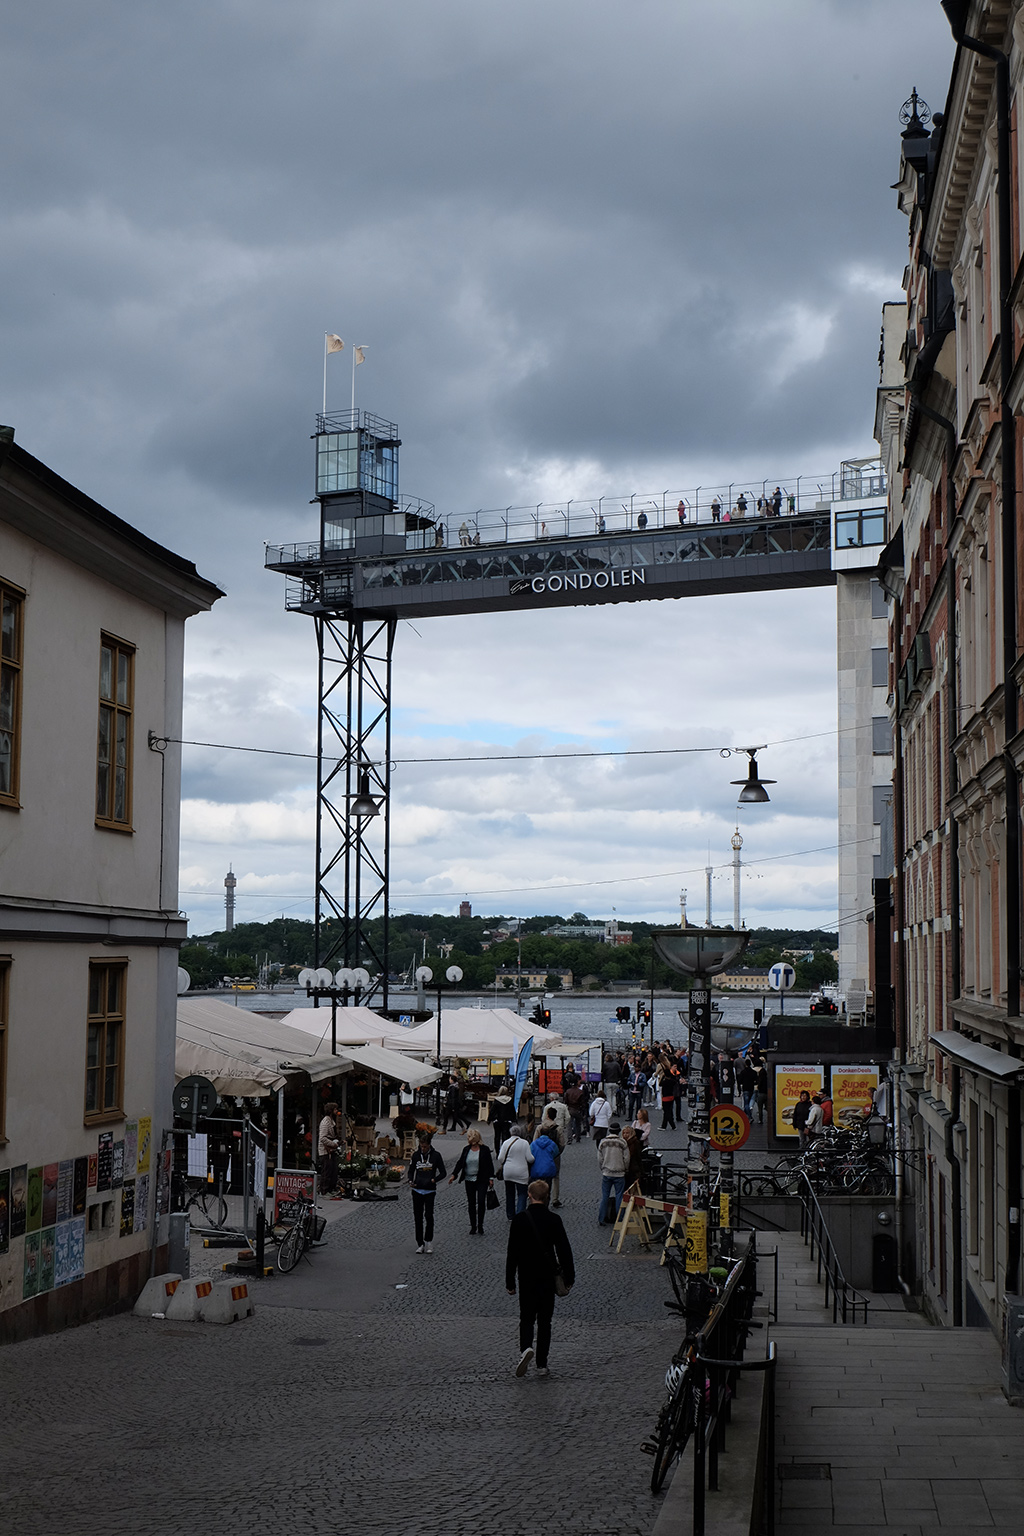 The Gondolen viewing platform and restaurant, Slussen